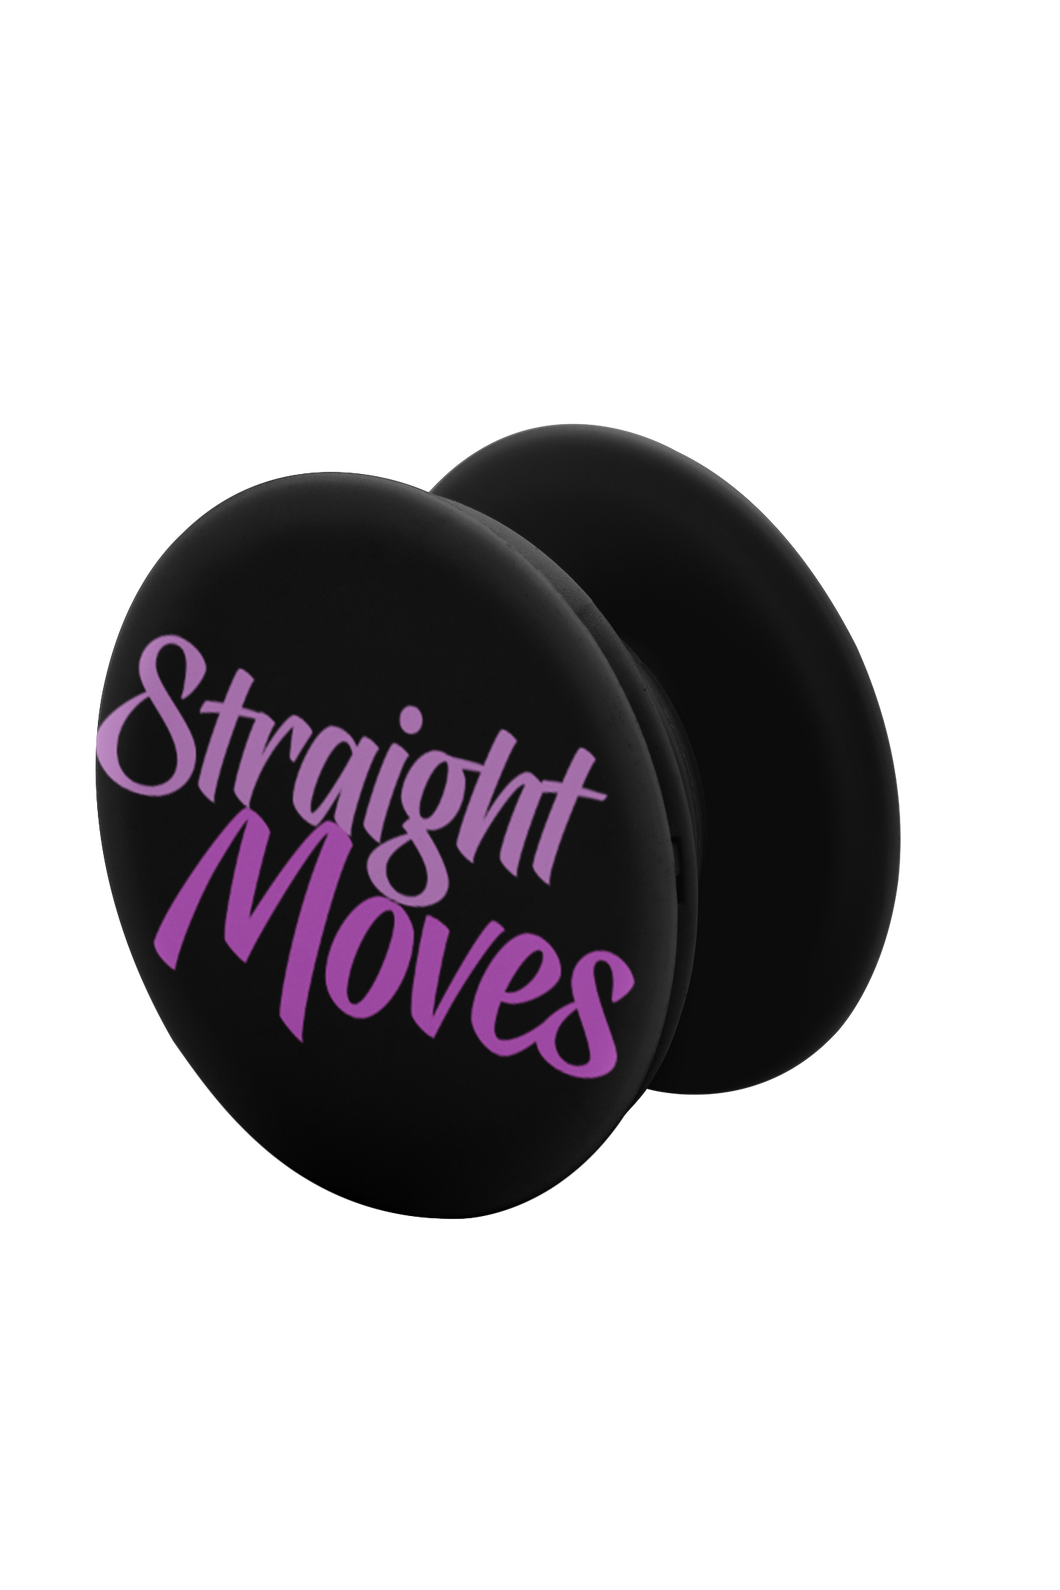 Straight Moves - Cute Phone Cases